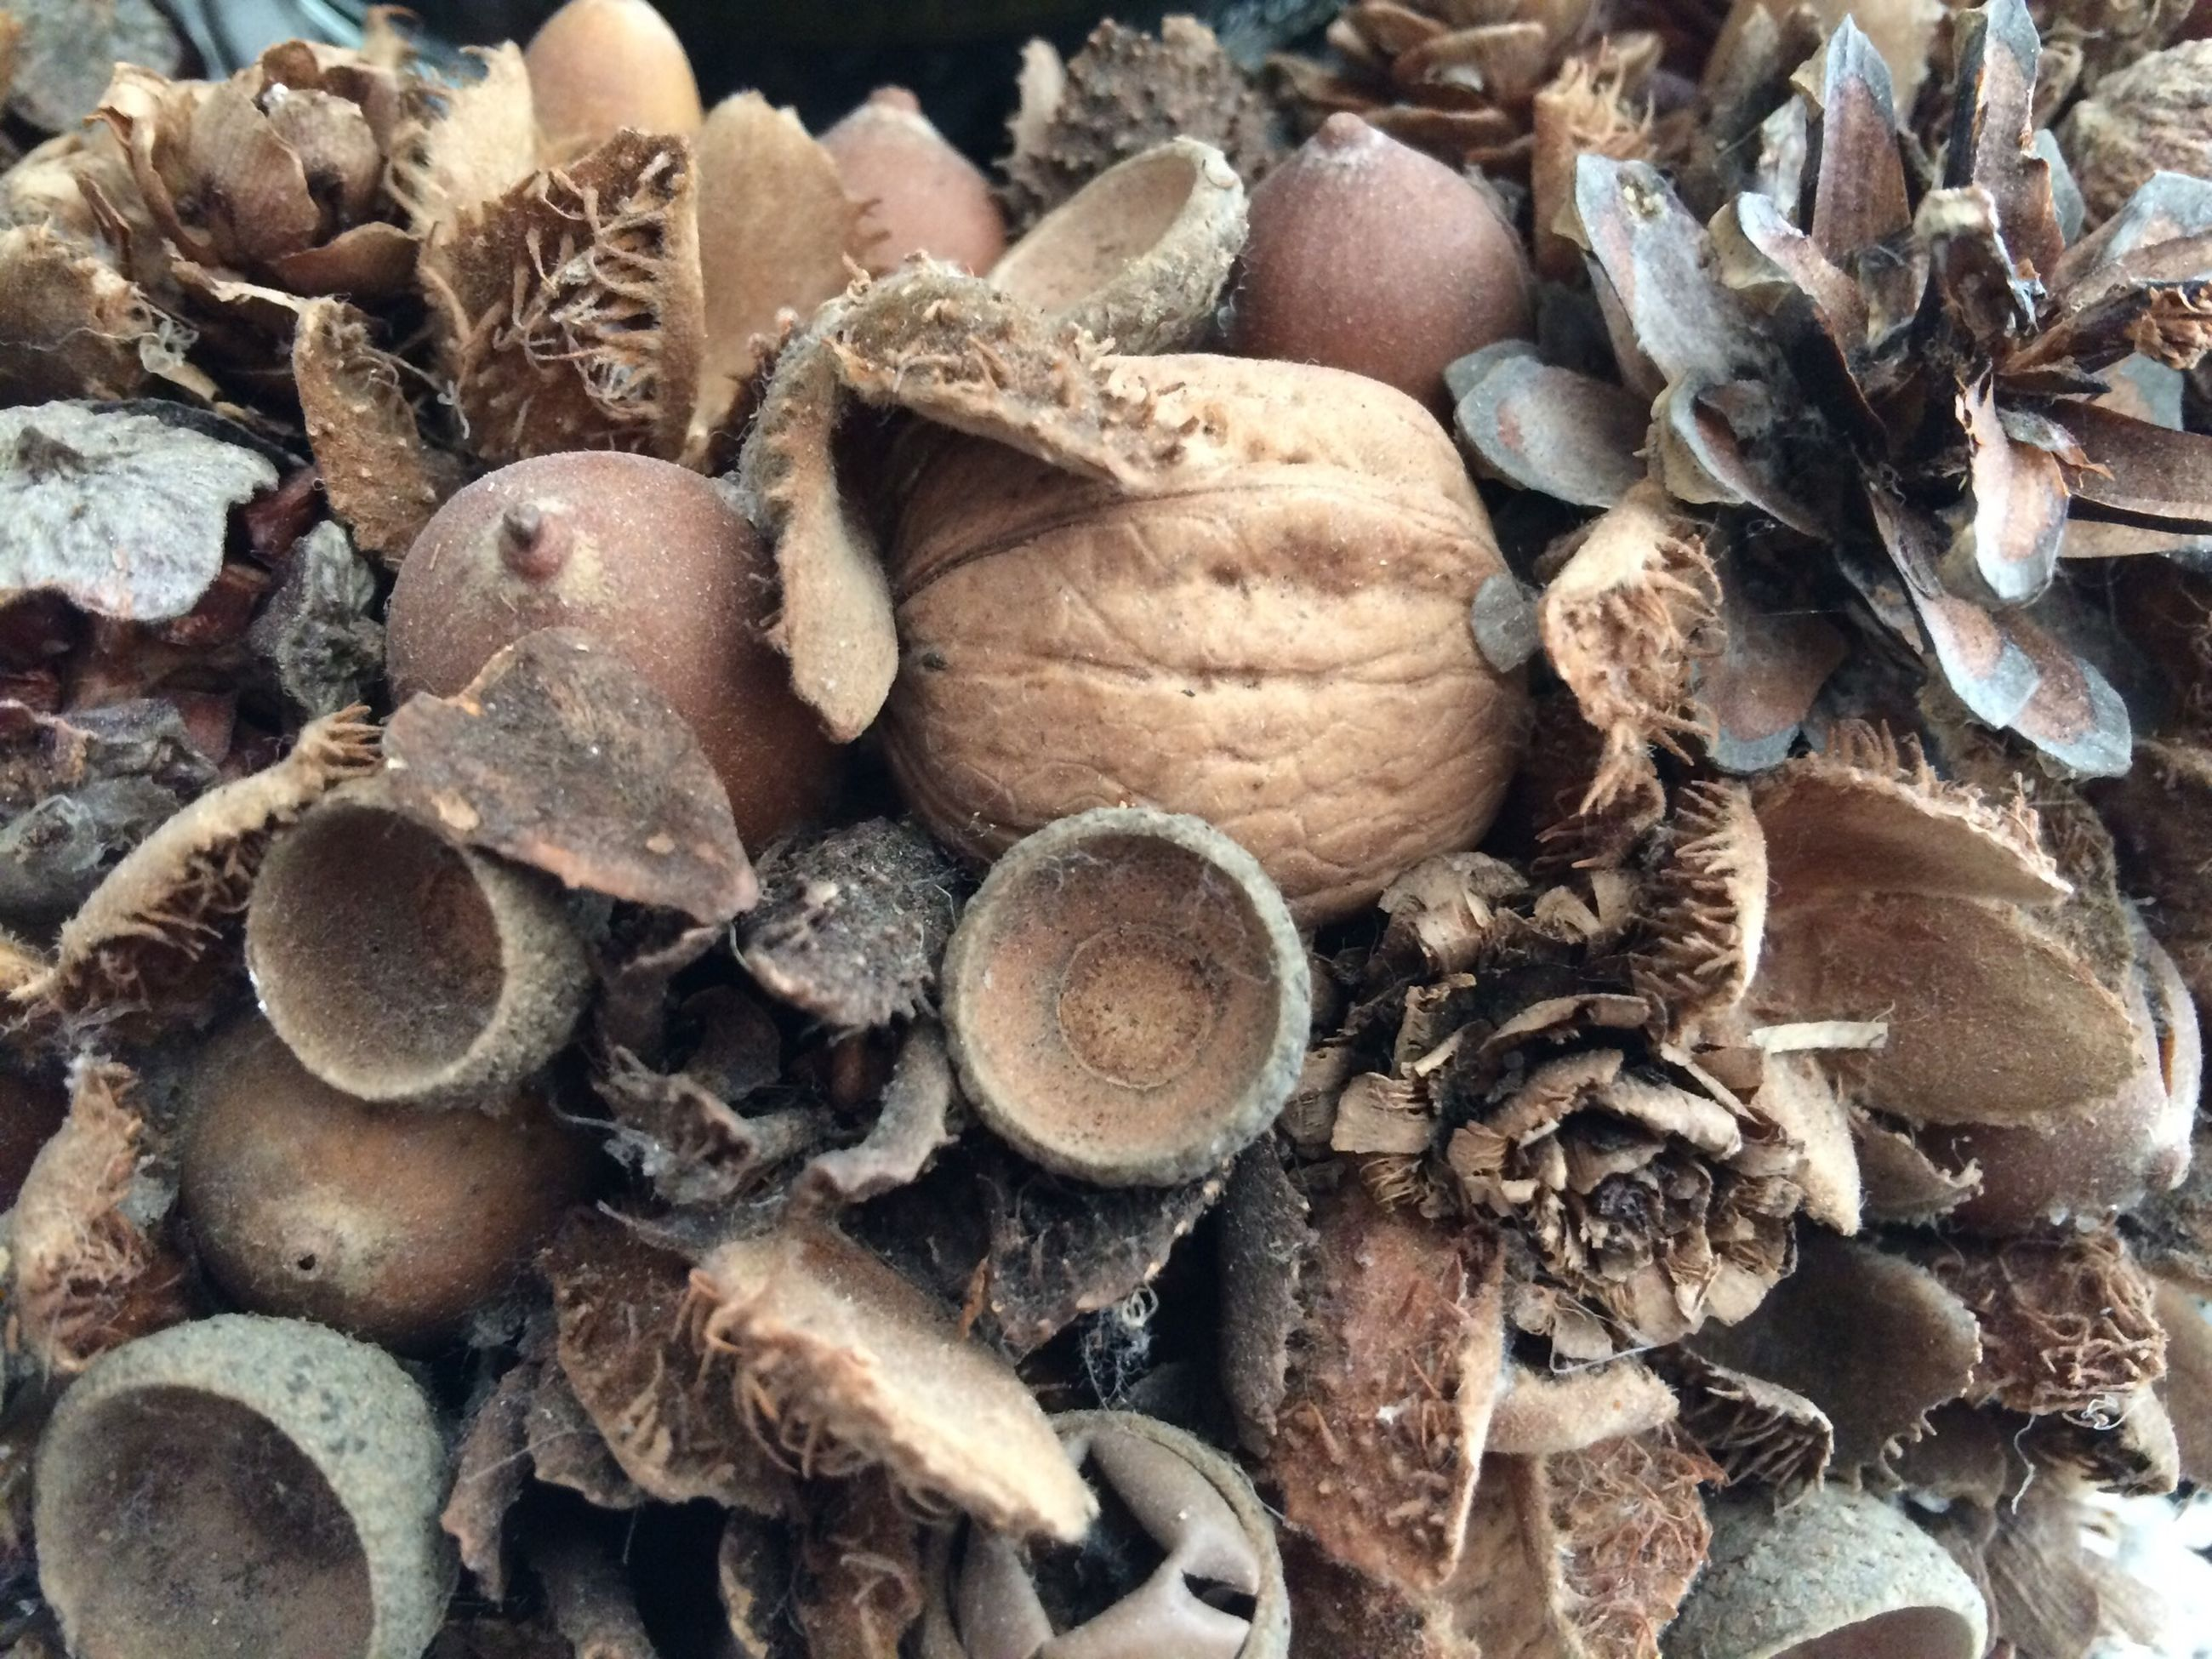 large group of objects, abundance, stack, high angle view, heap, close-up, firewood, lumber industry, healthy eating, log, deforestation, pebble, still life, food and drink, food, stone - object, nature, group of objects, outdoors, day